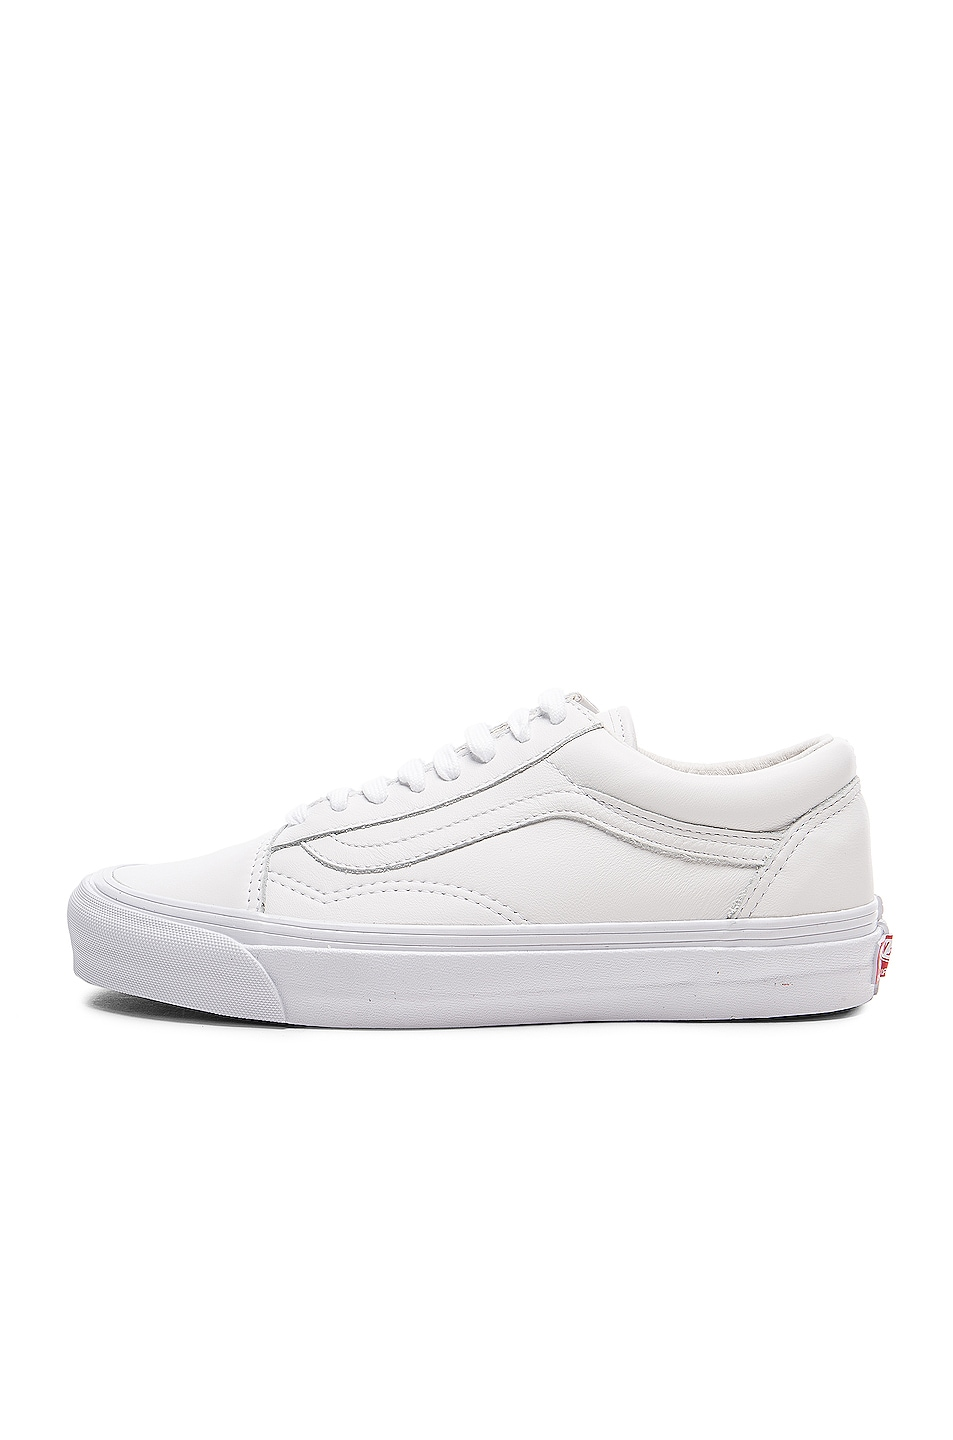 eb9622d8fc8 Vans Og Old Skool Leather Sneakers - White Size 11